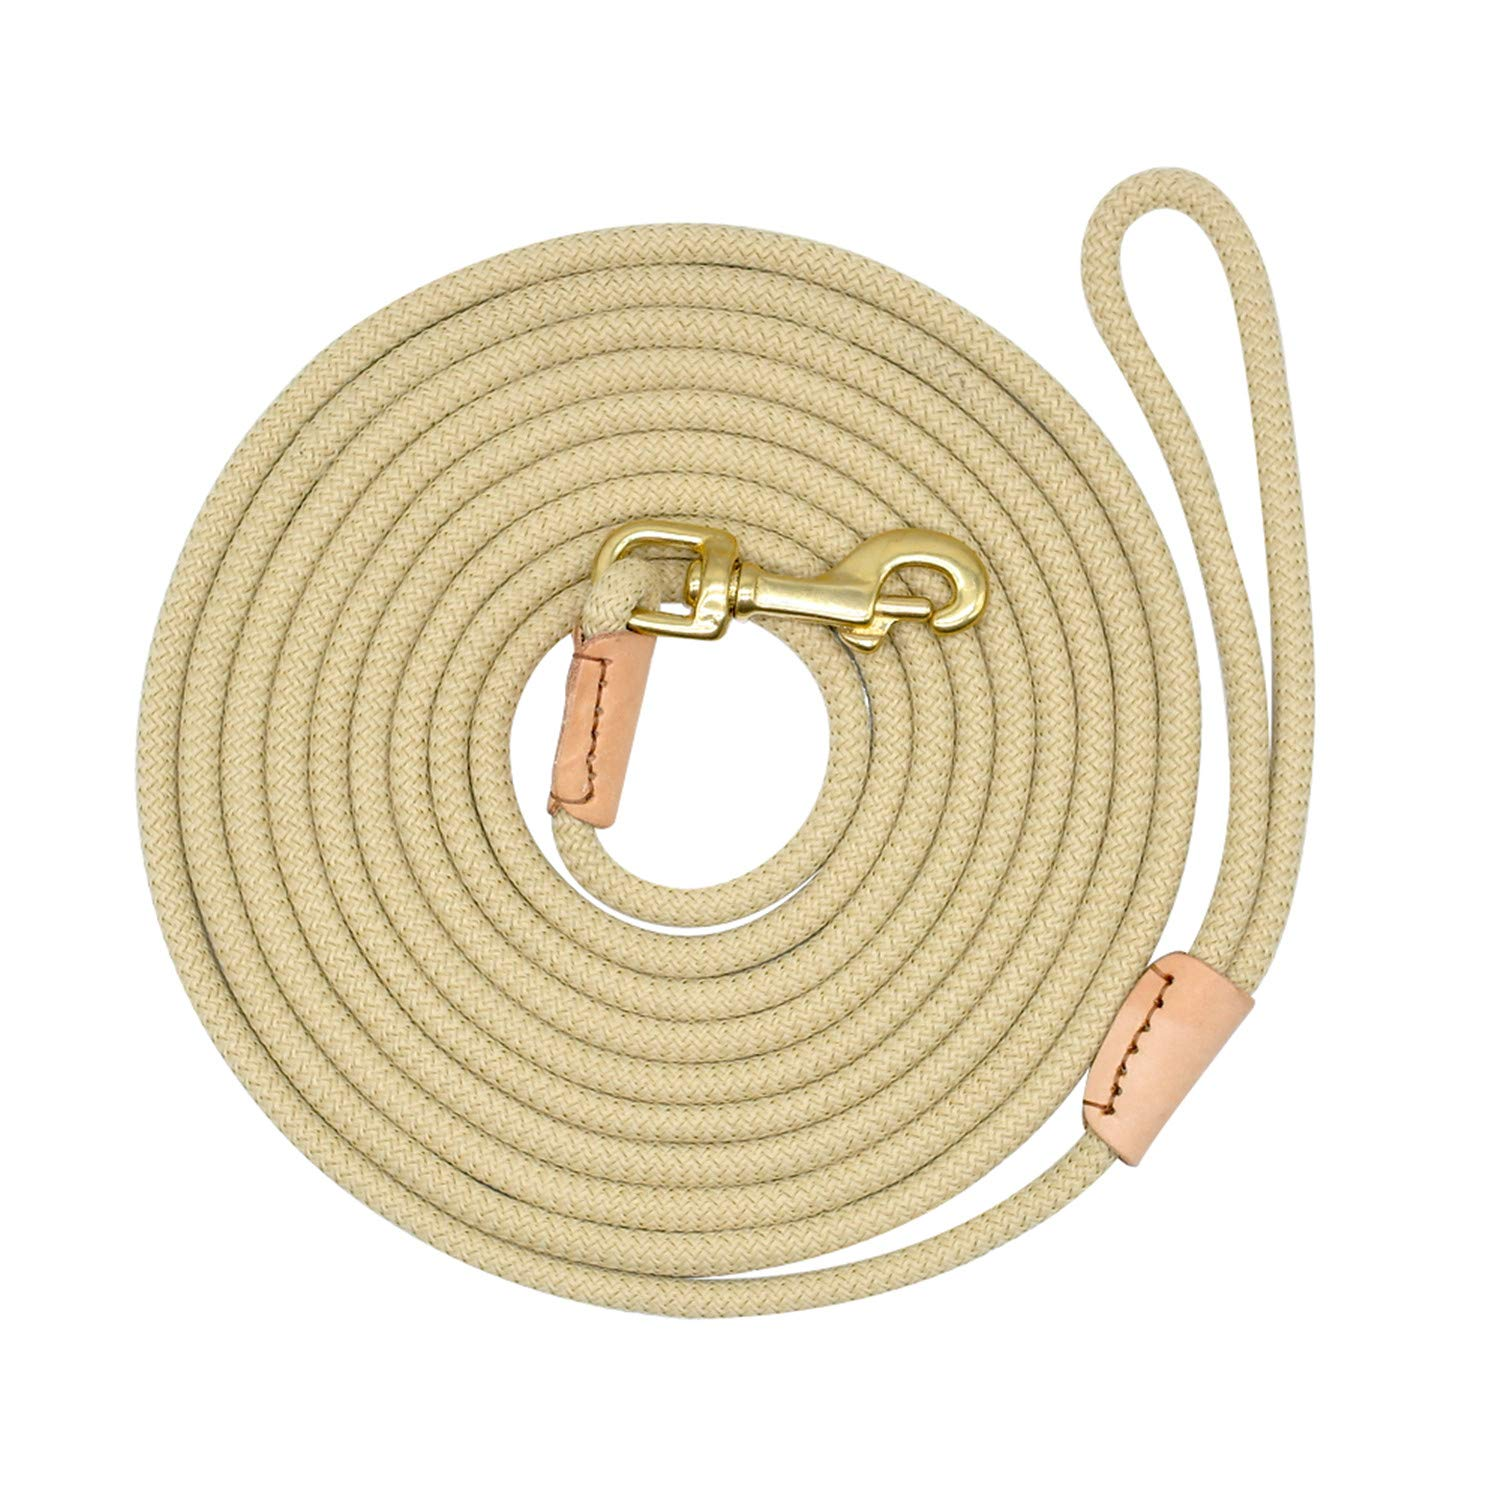 Beige 10mNylon Dog Leash Running Tracking NonSlip Long Leads Nylon Training Walking Leads 3M 5M 10M 15M for Medium Large Dogs Heavy Duty Coffee 20m